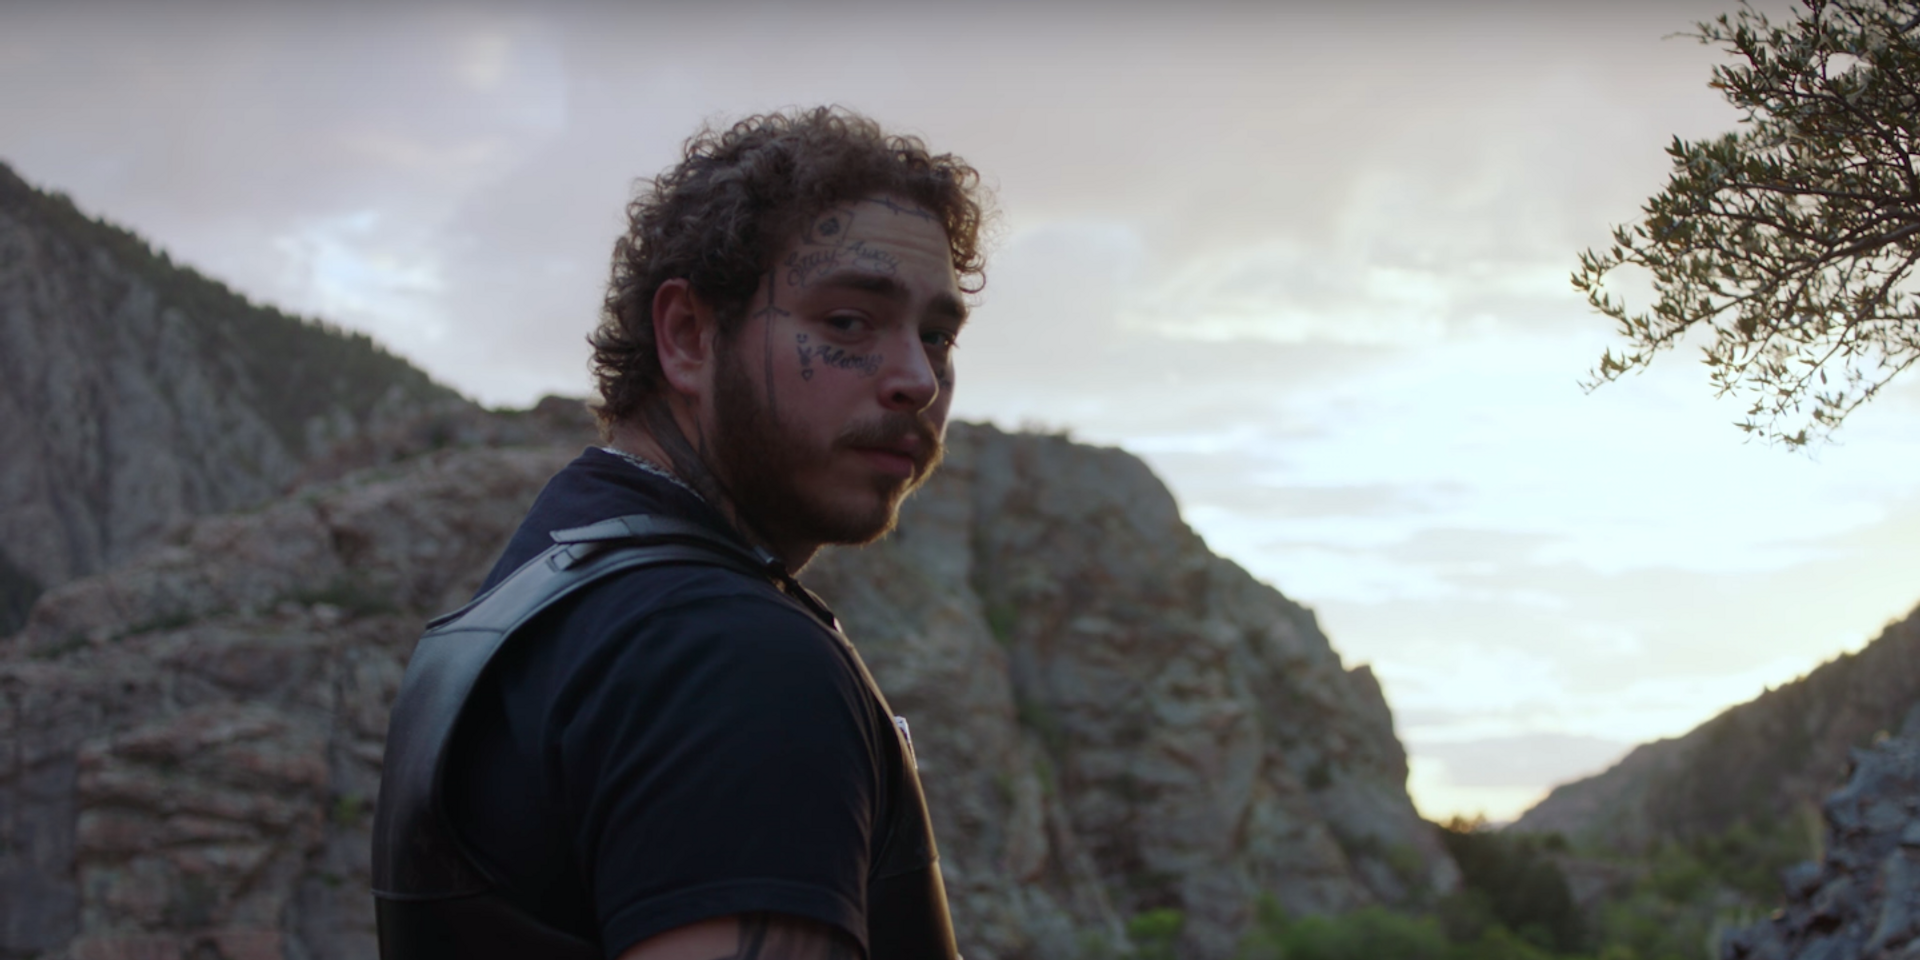 Post Malone shows off his riches in new music video for 'Saint-Tropez'